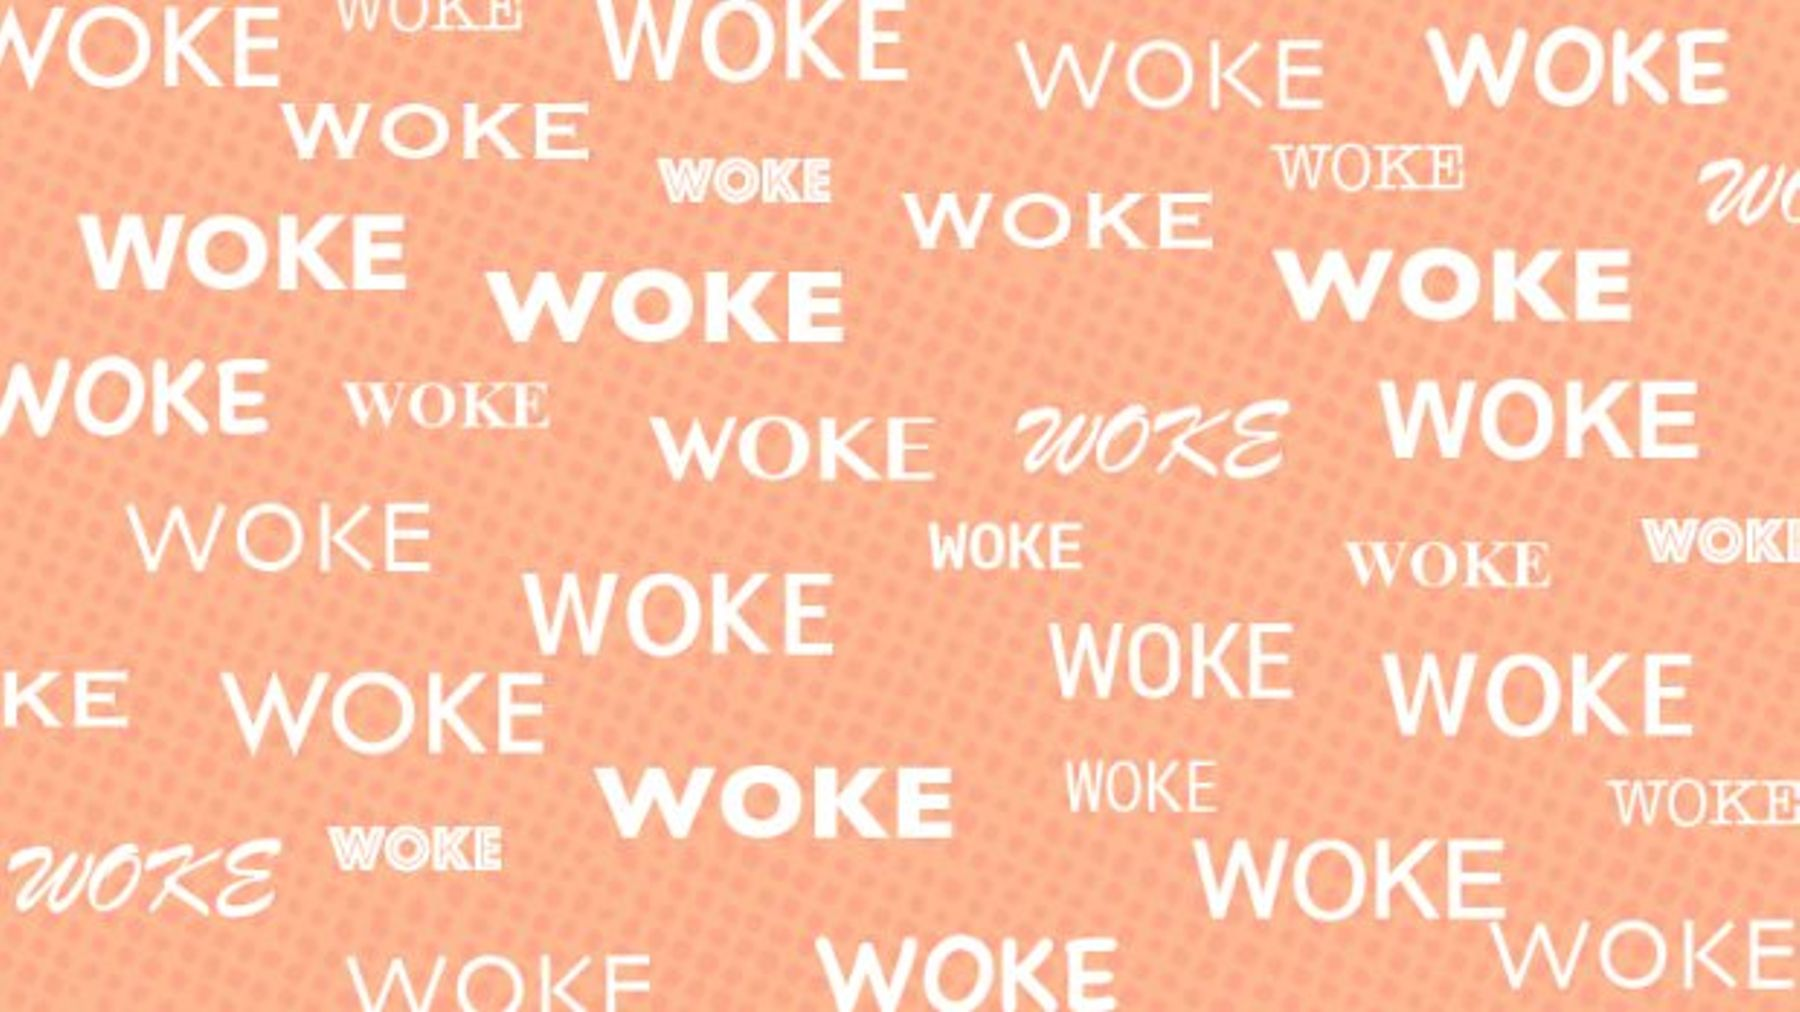 From woke baes to woke o meters the meaning of woke has shifted greatly